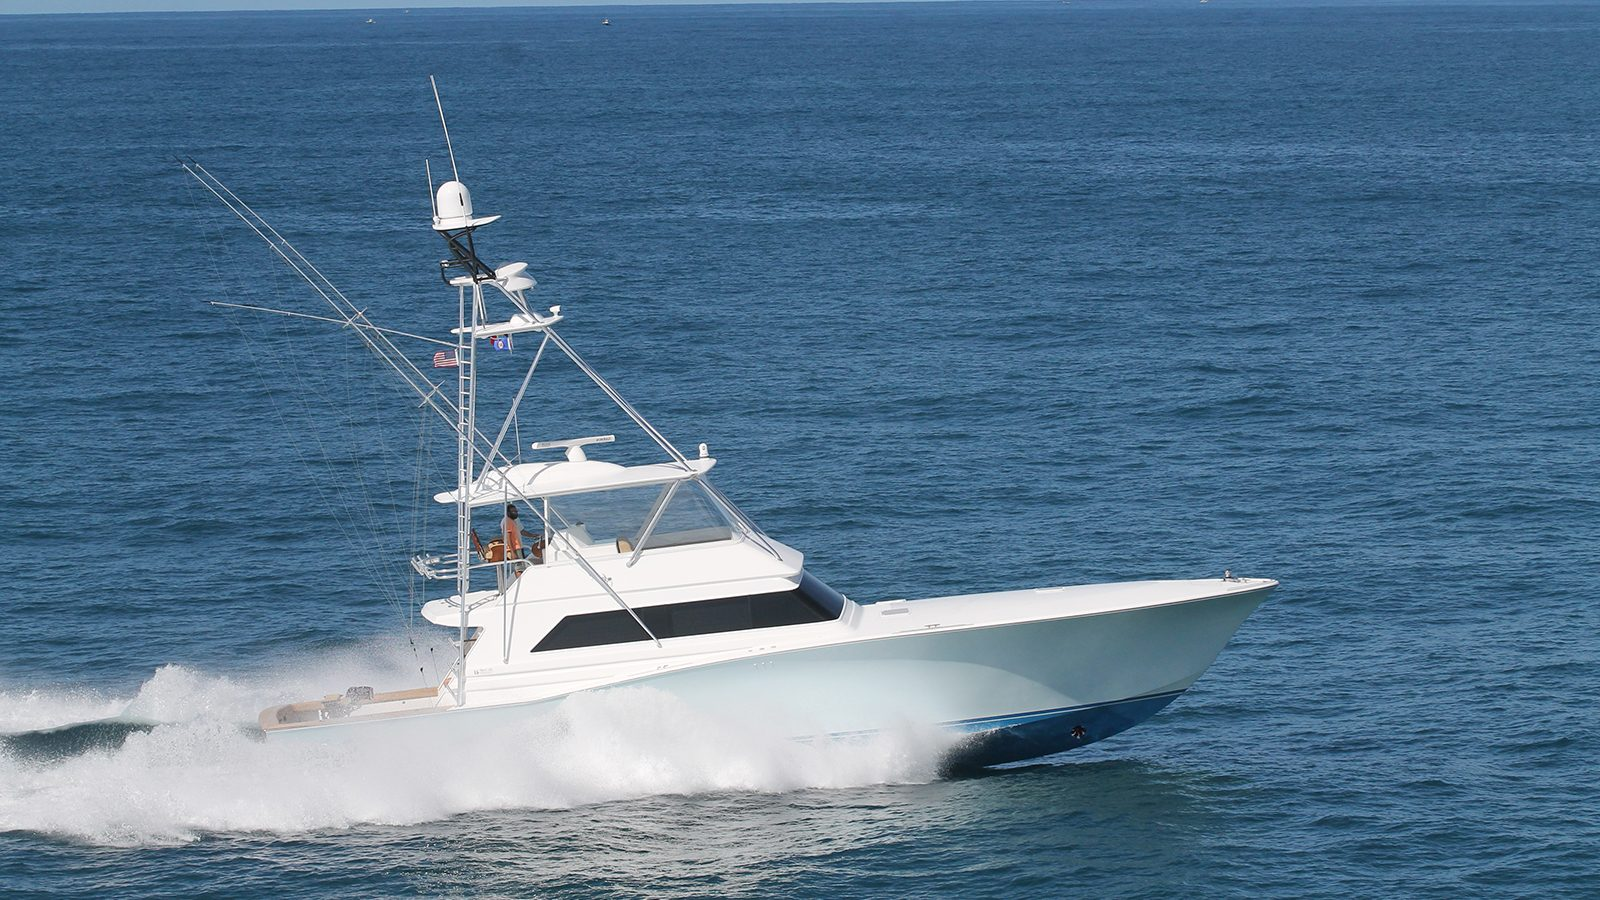 True Grit Yacht for Sale - IYC